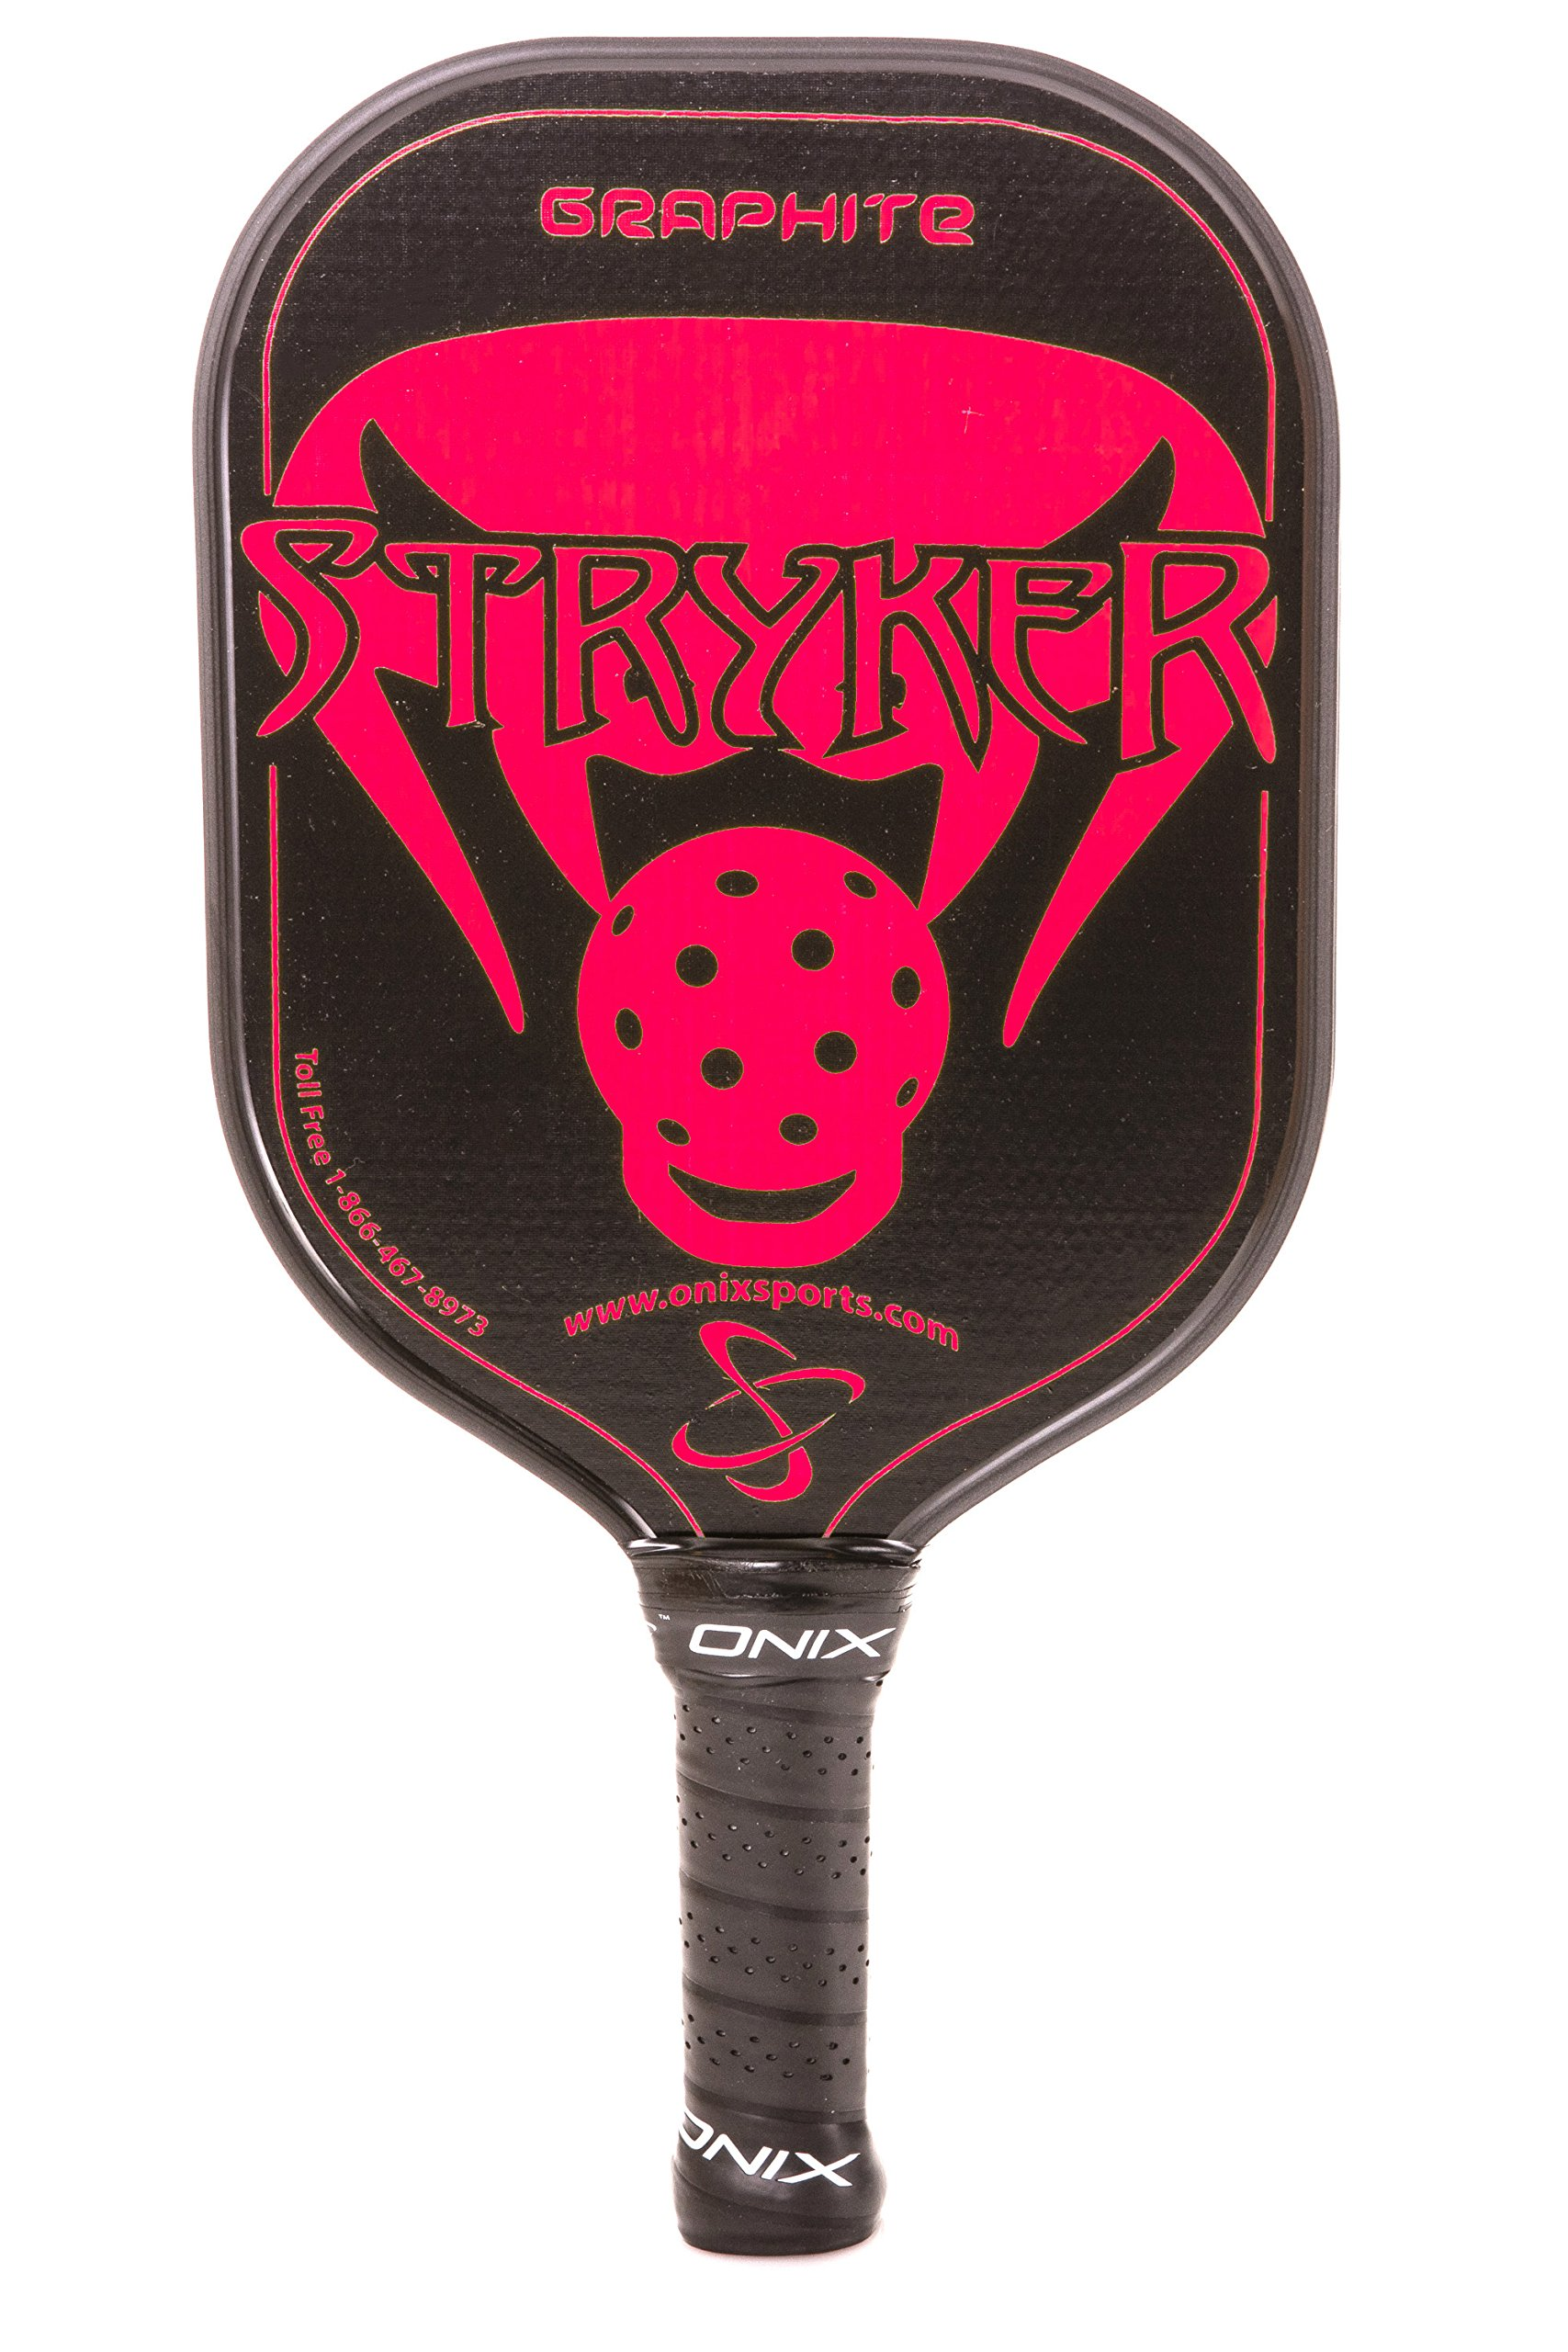 Onix Graphite Stryker Pickleball Paddle Features Oversized N